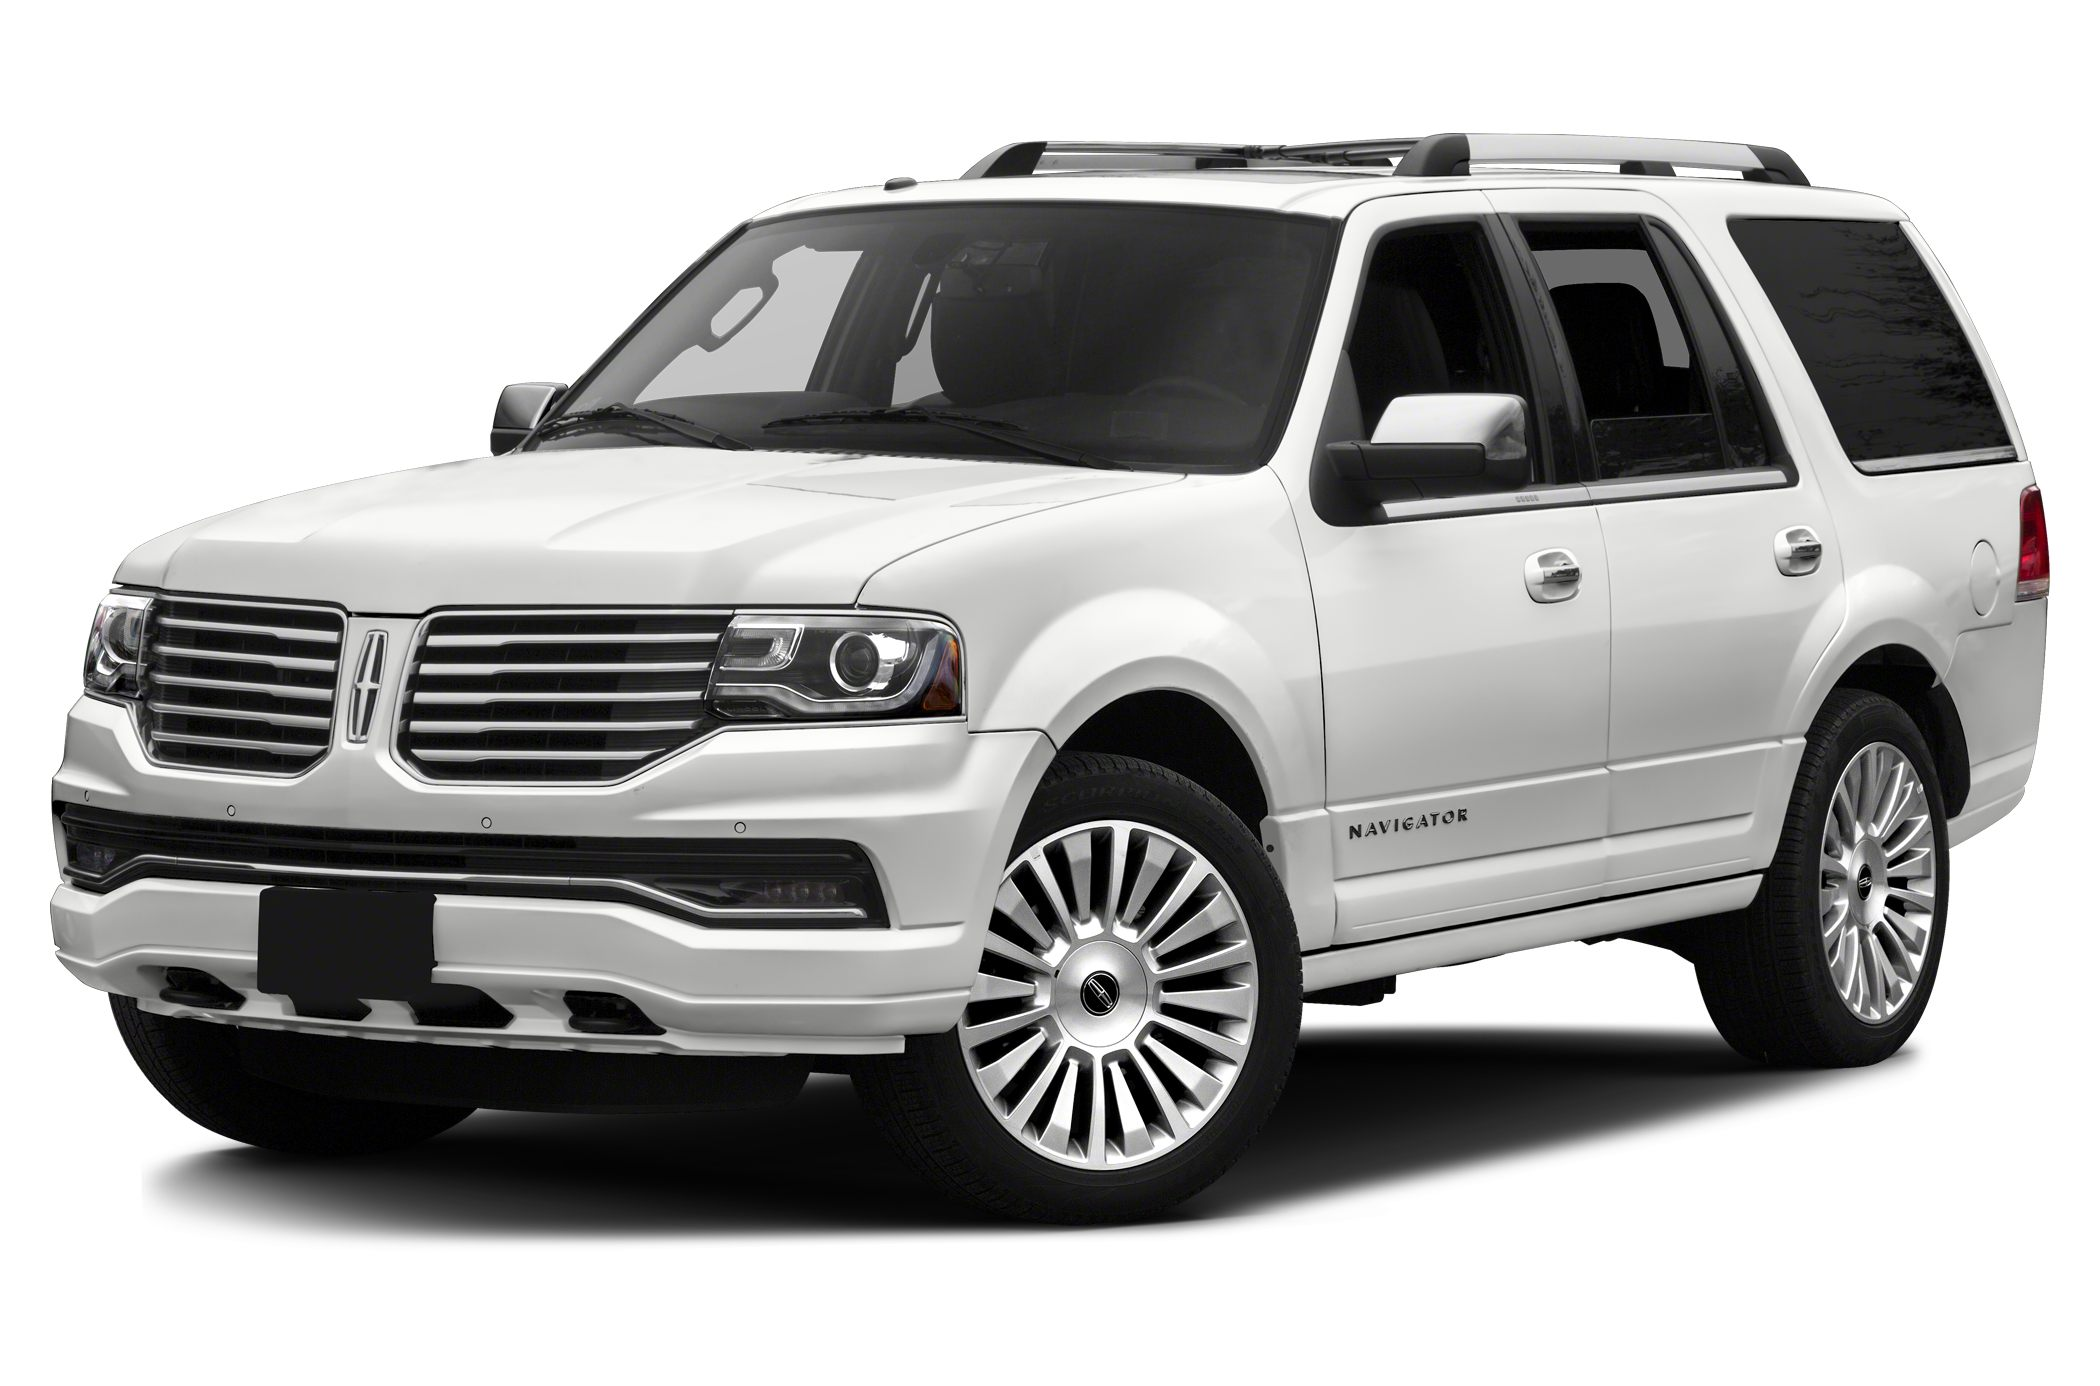 2015 Lincoln Navigator Base SUV for sale in Houston for $72,405 with 21 miles